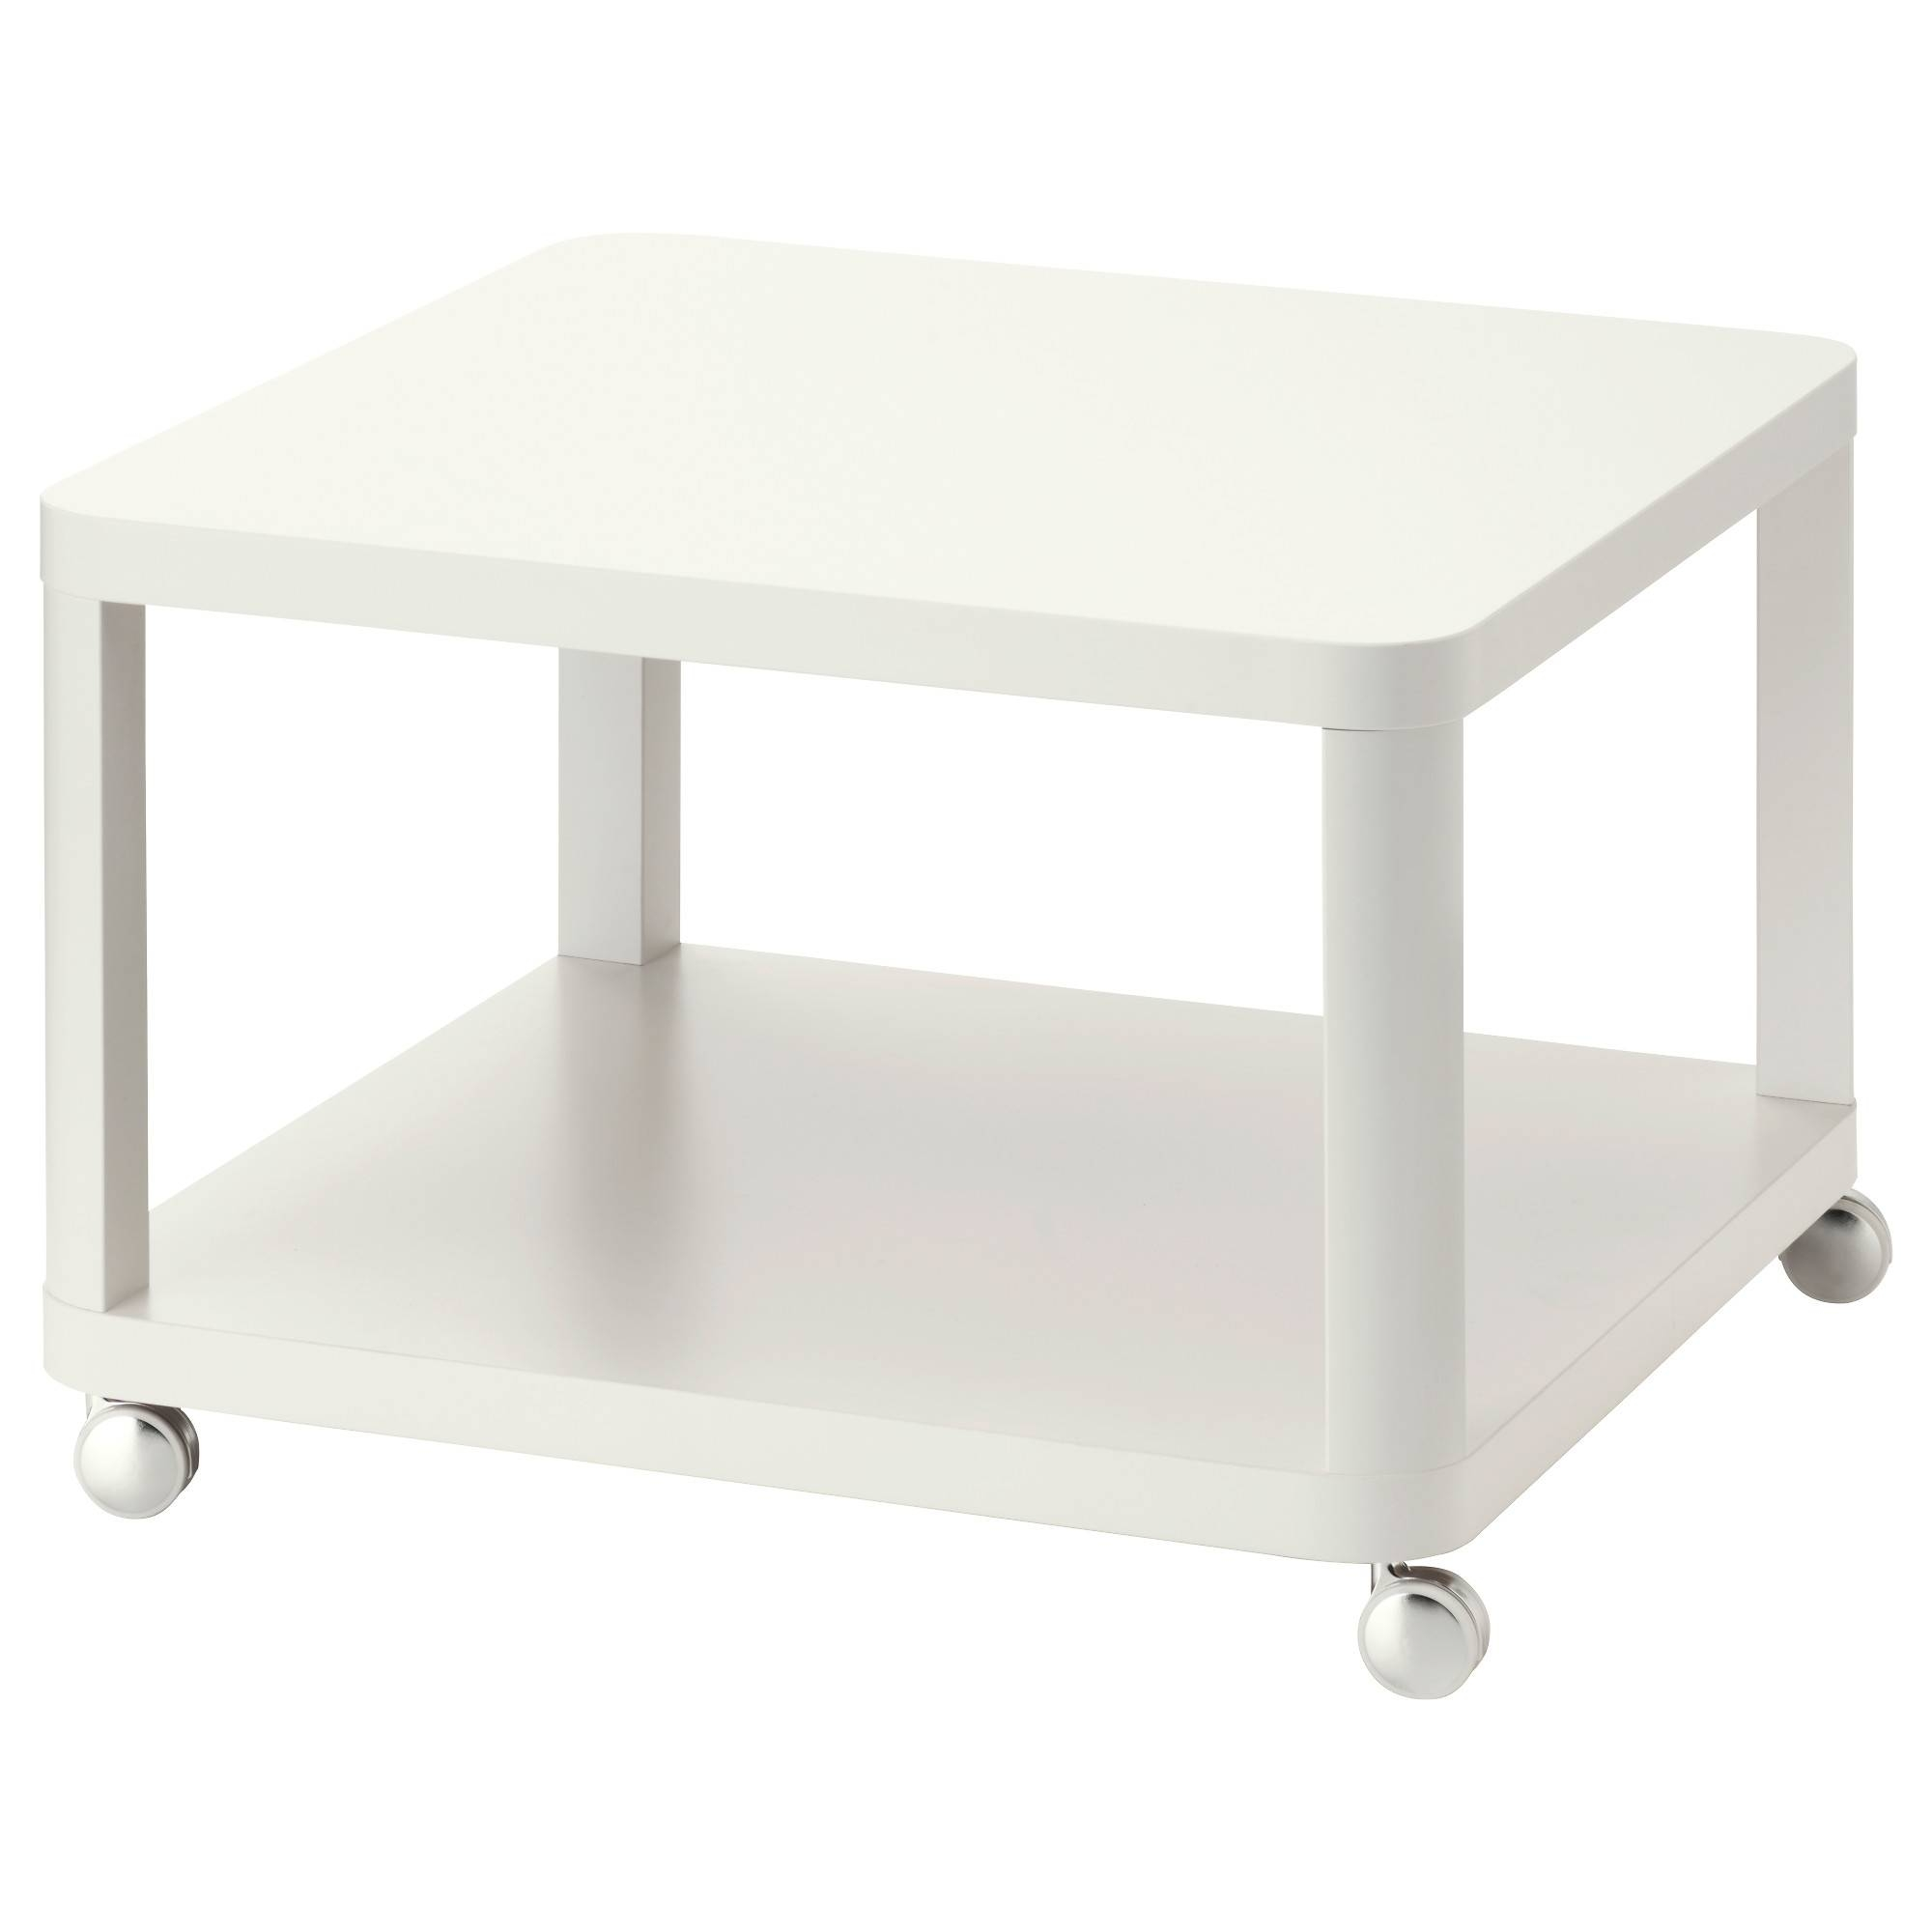 Coffee Tables & Console Tables - Ikea for Glass Coffee Tables With Casters (Image 13 of 30)